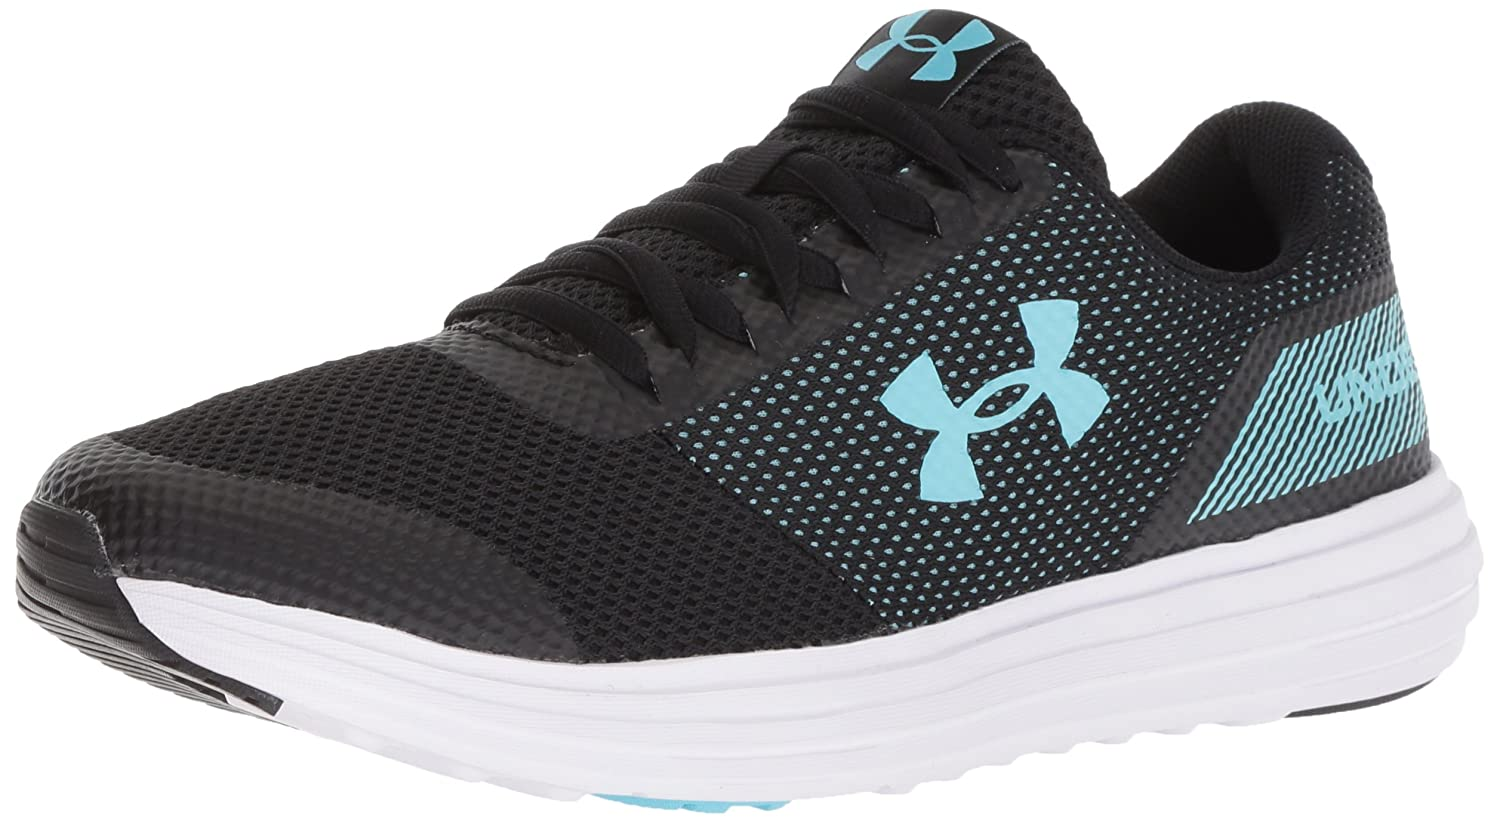 Under Armour Women s Surge D Running Shoe 501 Purple, 8